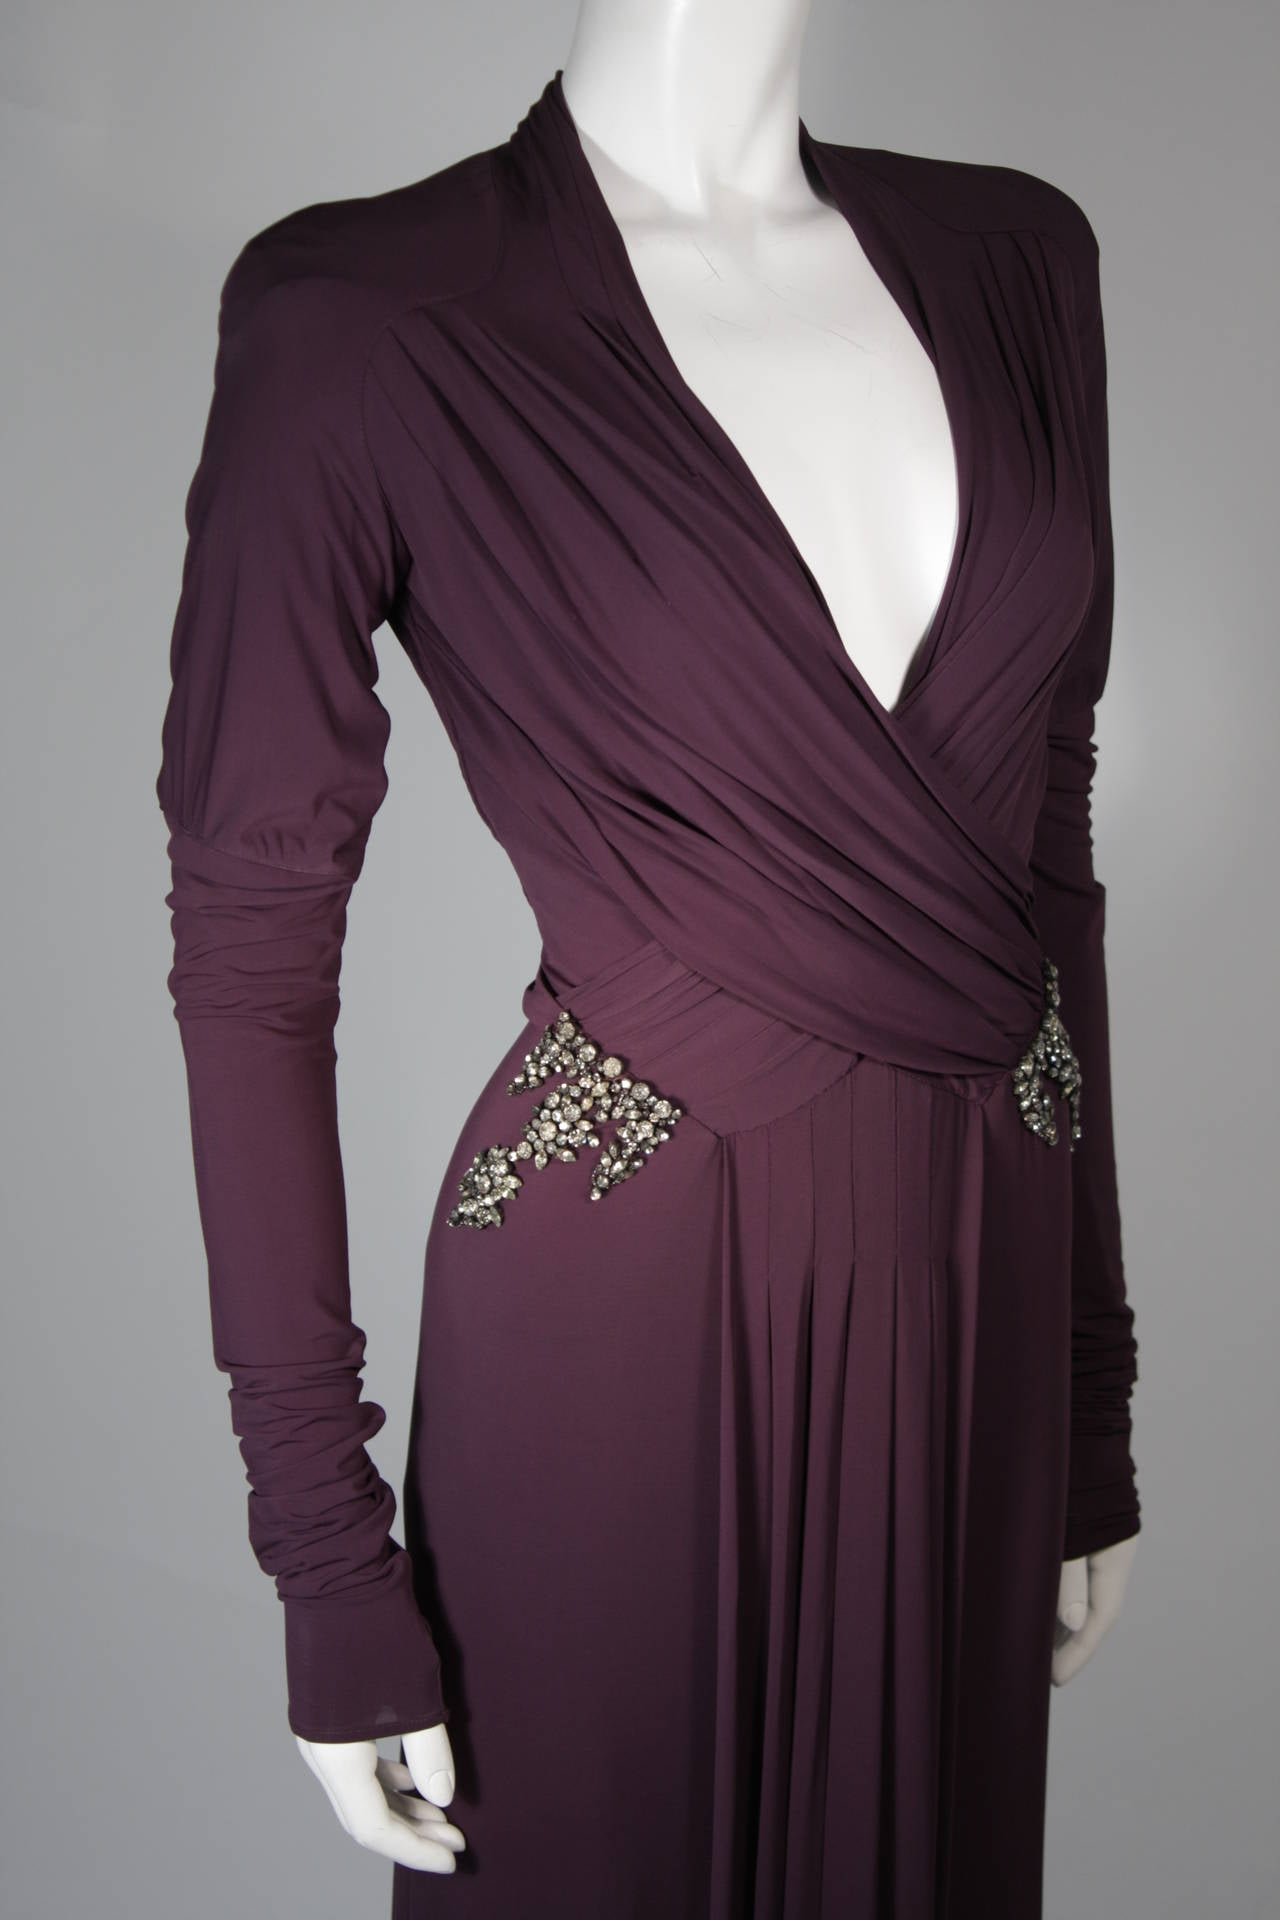 Roberto Cavalli Aubergine Long Sleeve Jersey Gown with Embellishments Size 40 5